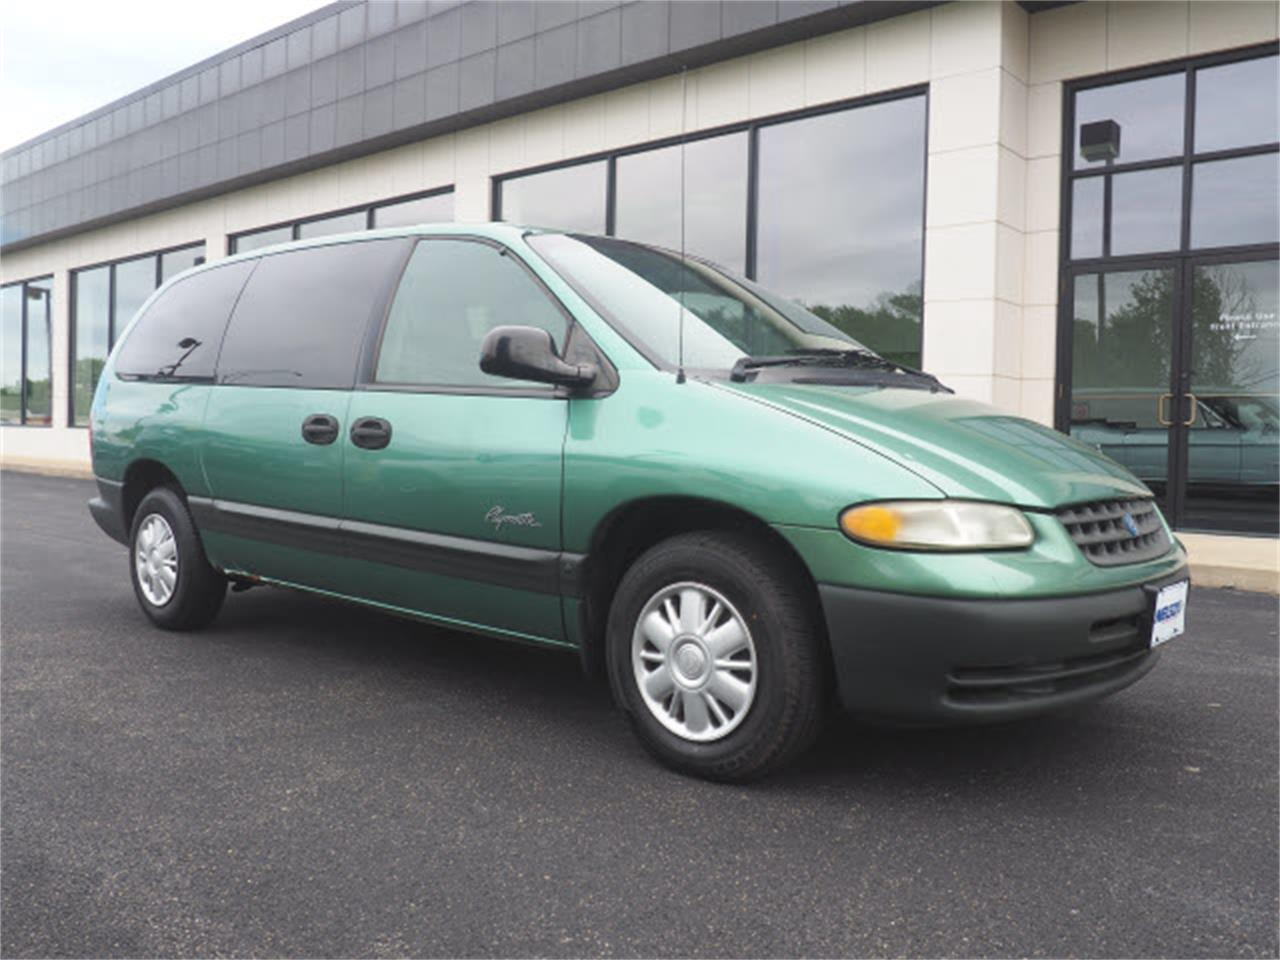 1998 plymouth grand voyager for sale classiccars com cc 1104358 1998 plymouth grand voyager for sale